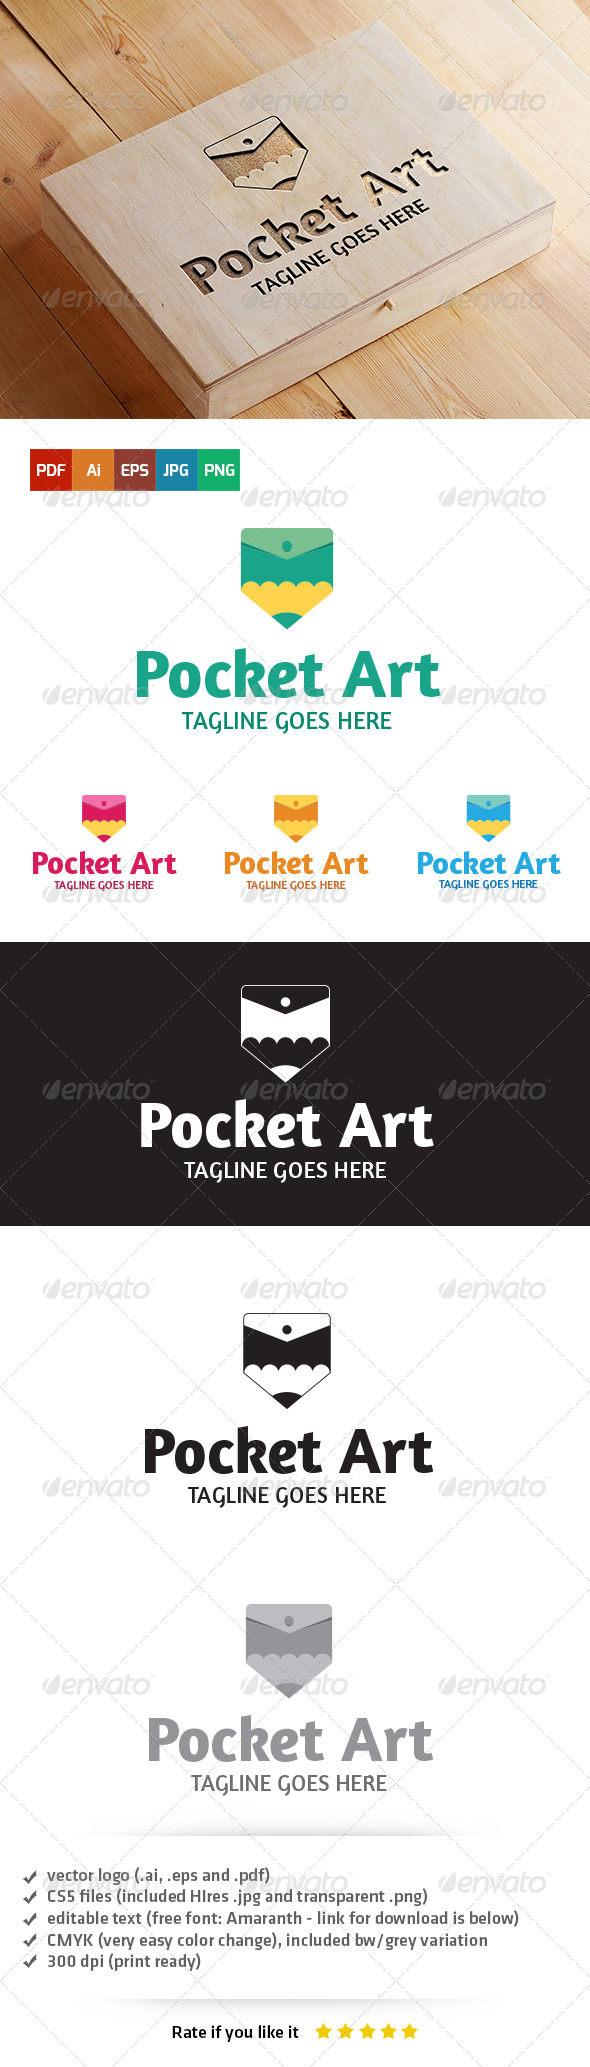 Pocket Art Logo